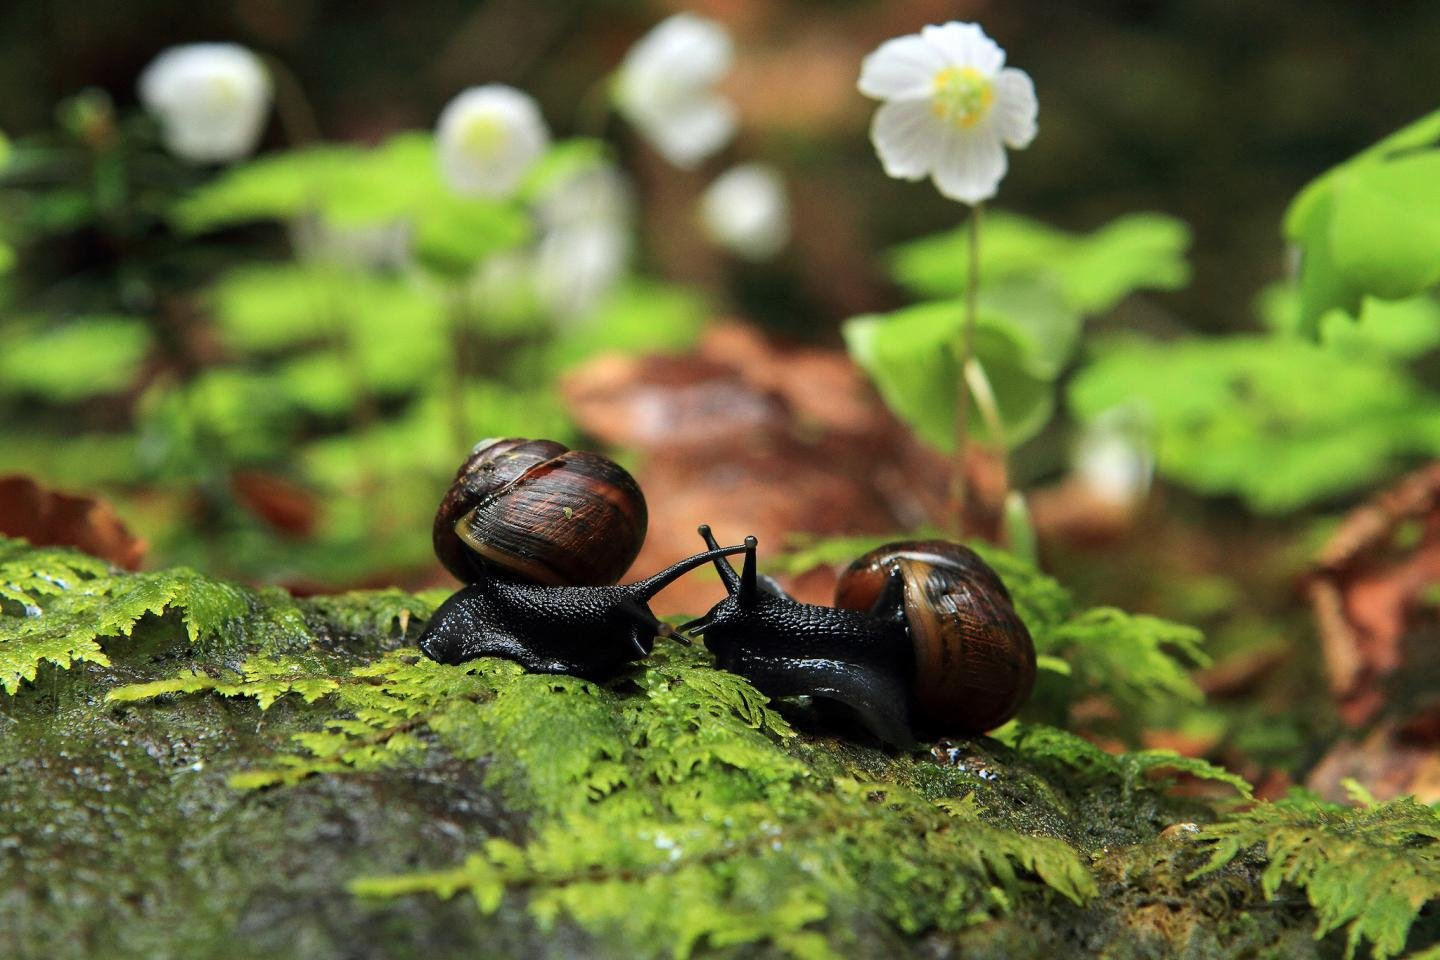 Download hd 1440x960 Snail PC background ID:198767 for free